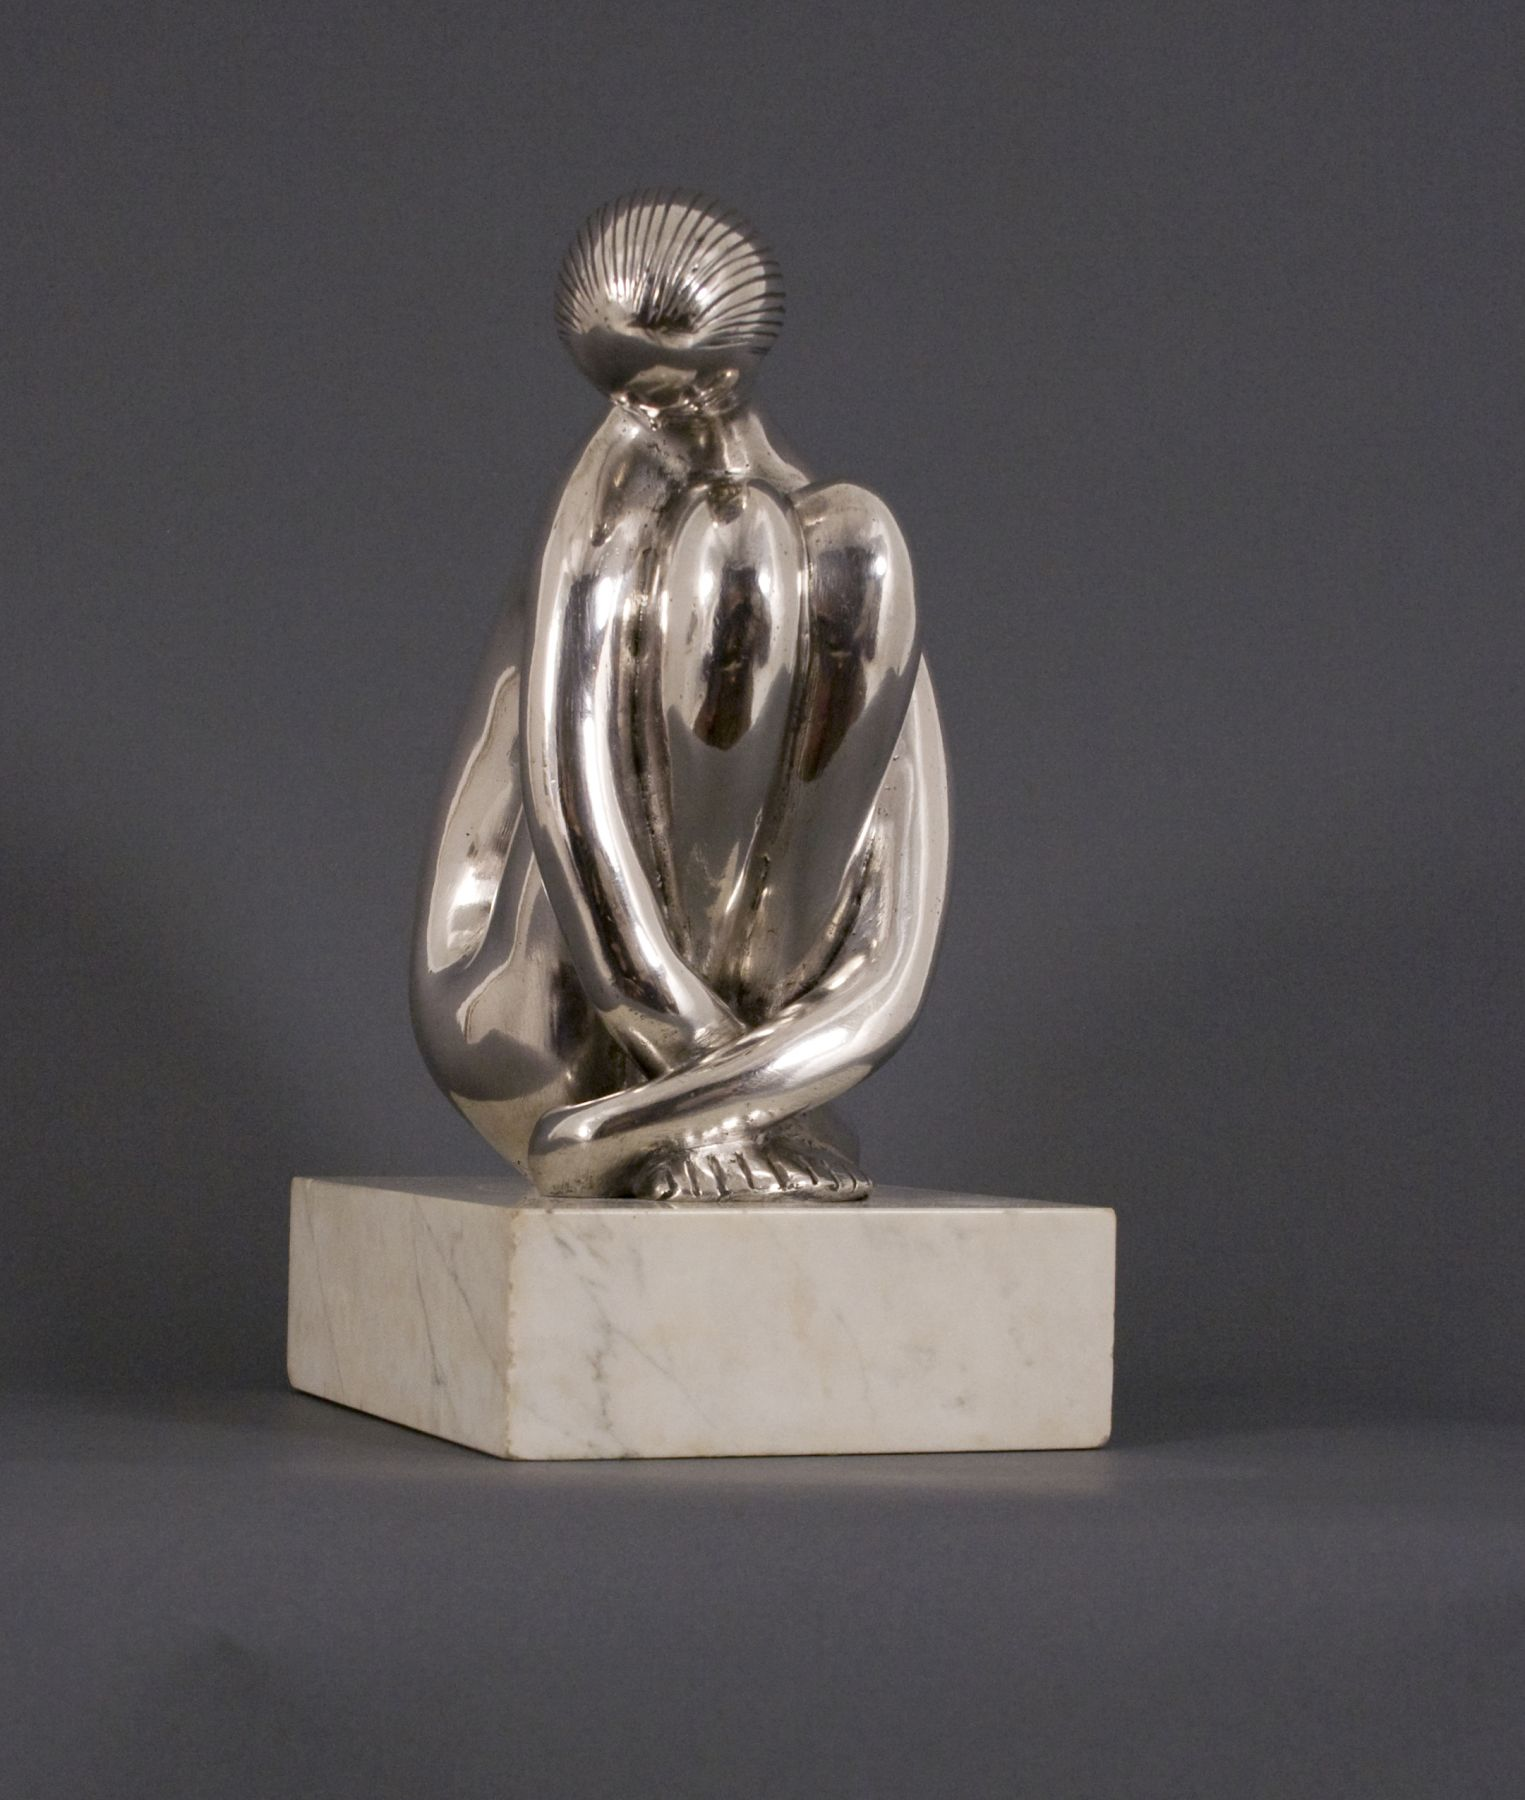 hugo robus, Meditating Girl, 1958, cast in 1962, silver, 8 x 3 1/2 x 5 inches, Edition of 3